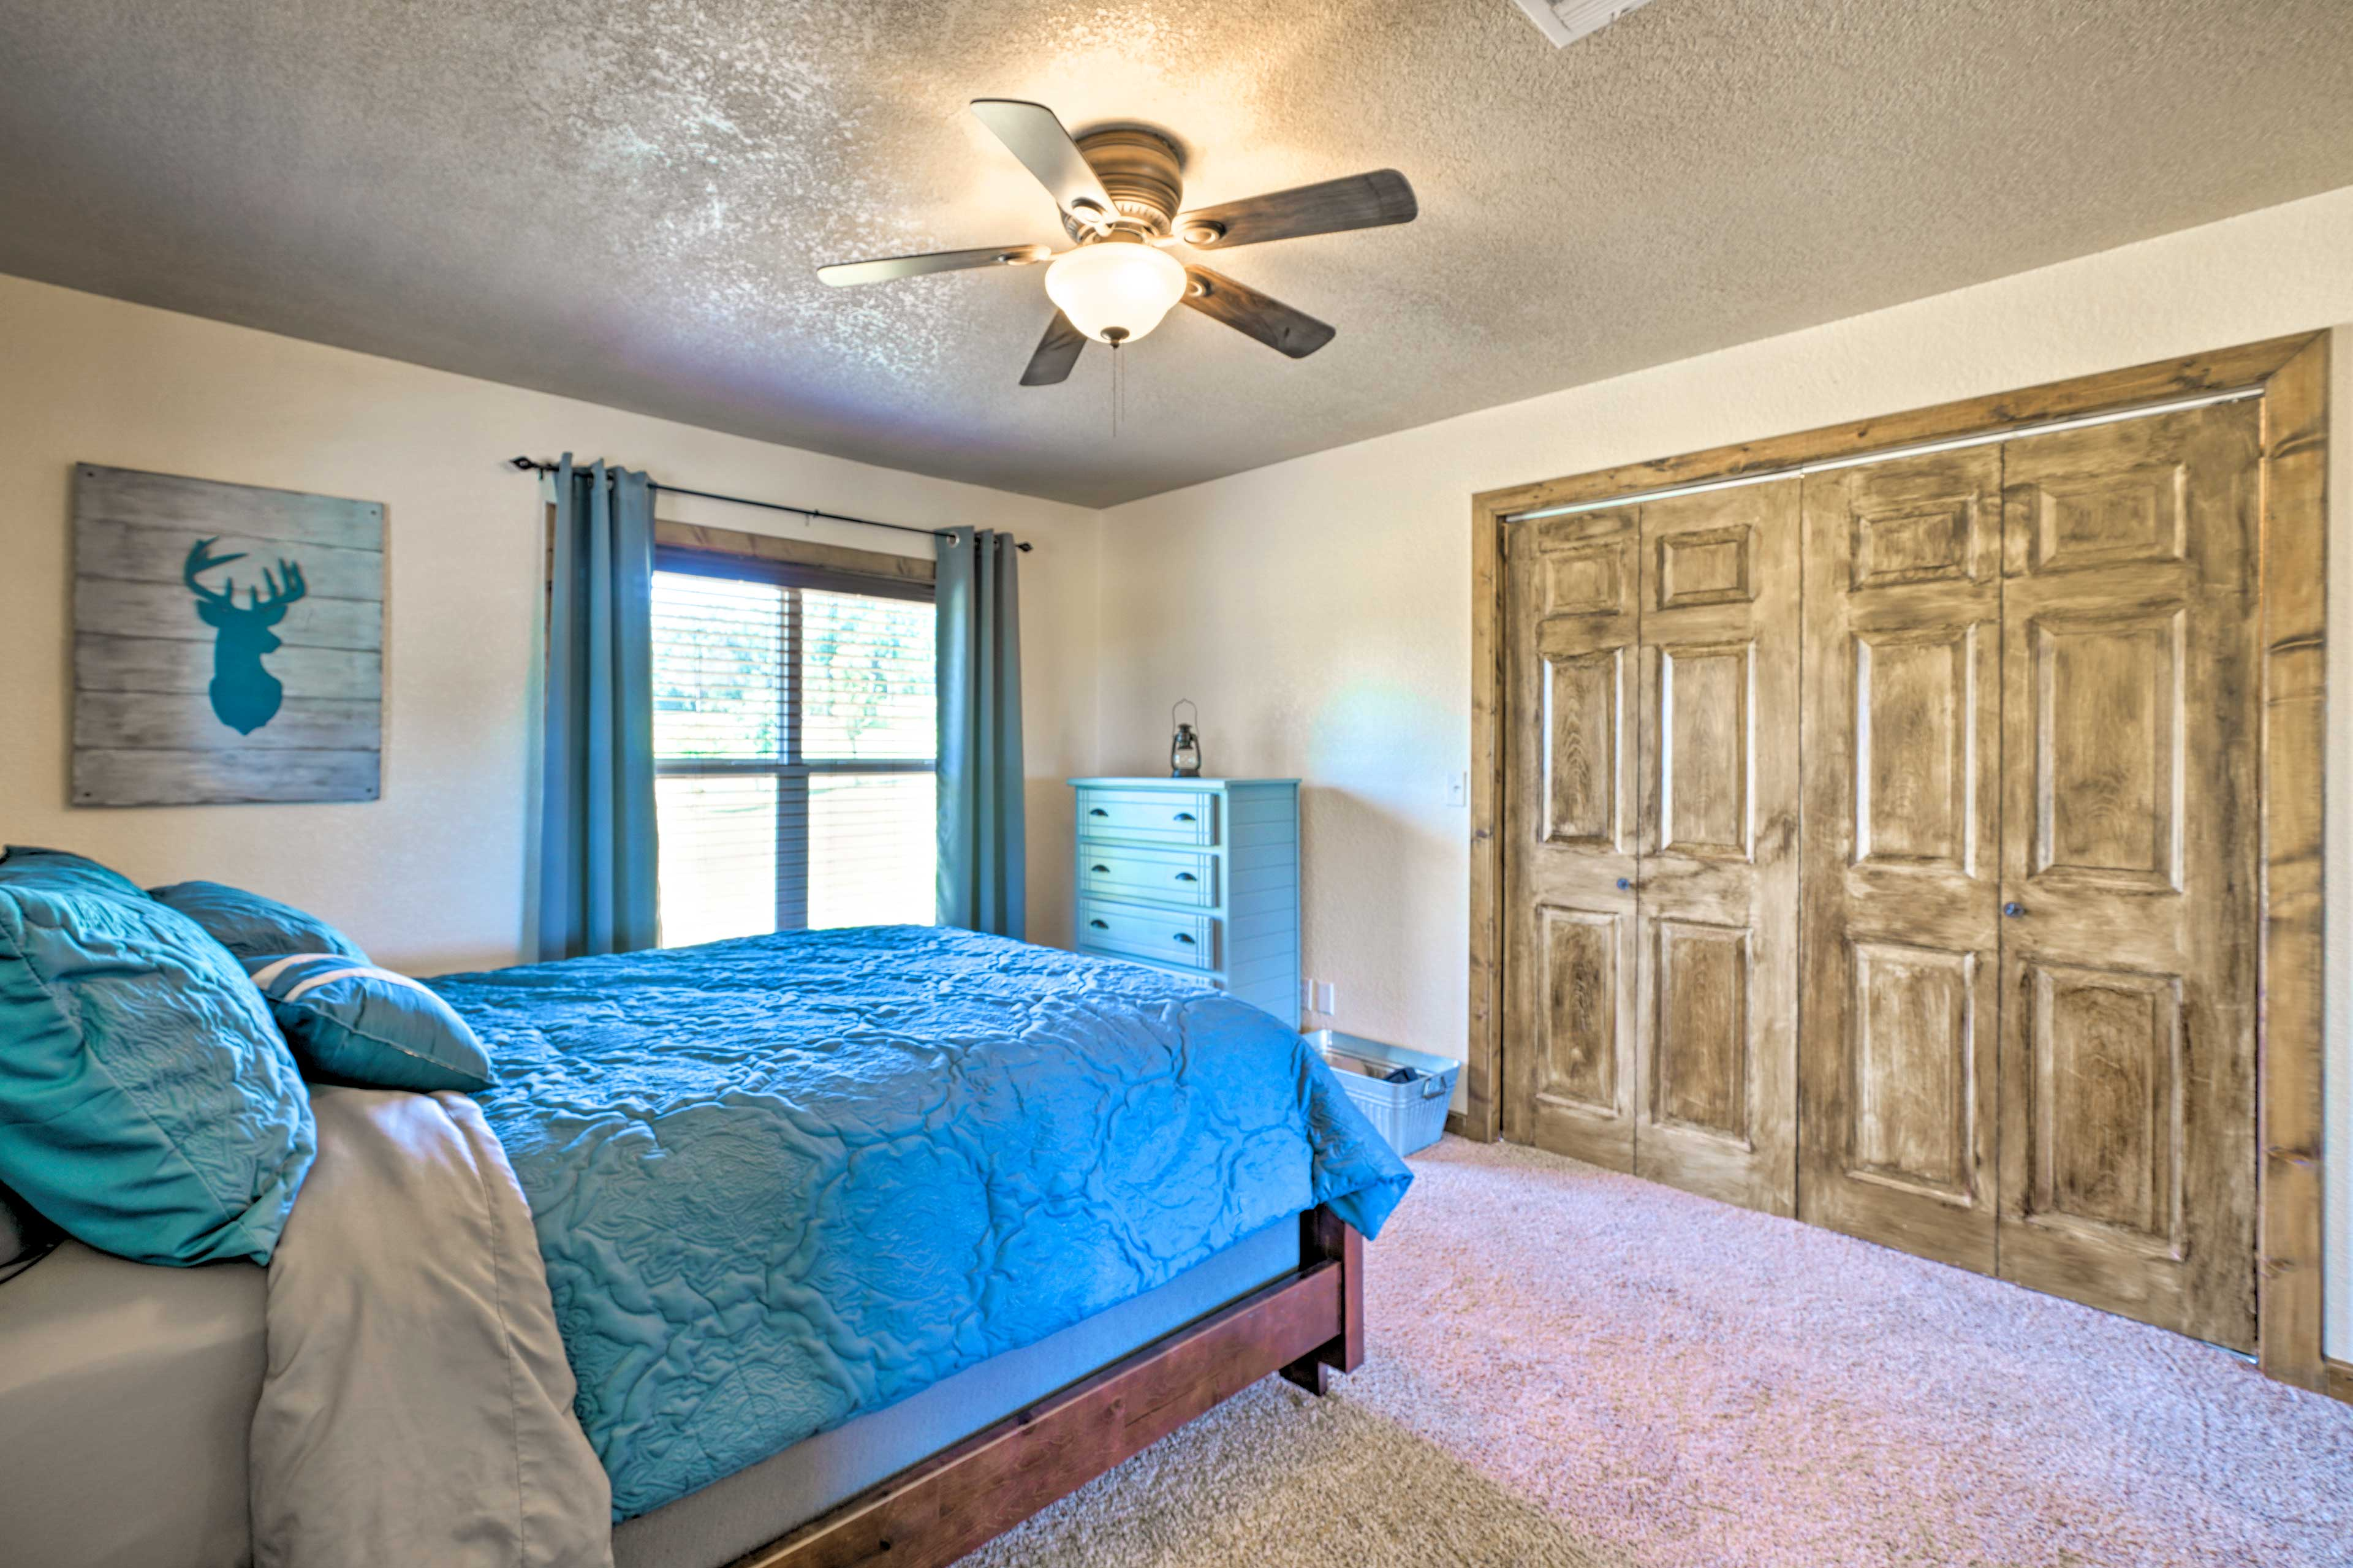 A queen bed and spacious closet complete the bedroom.